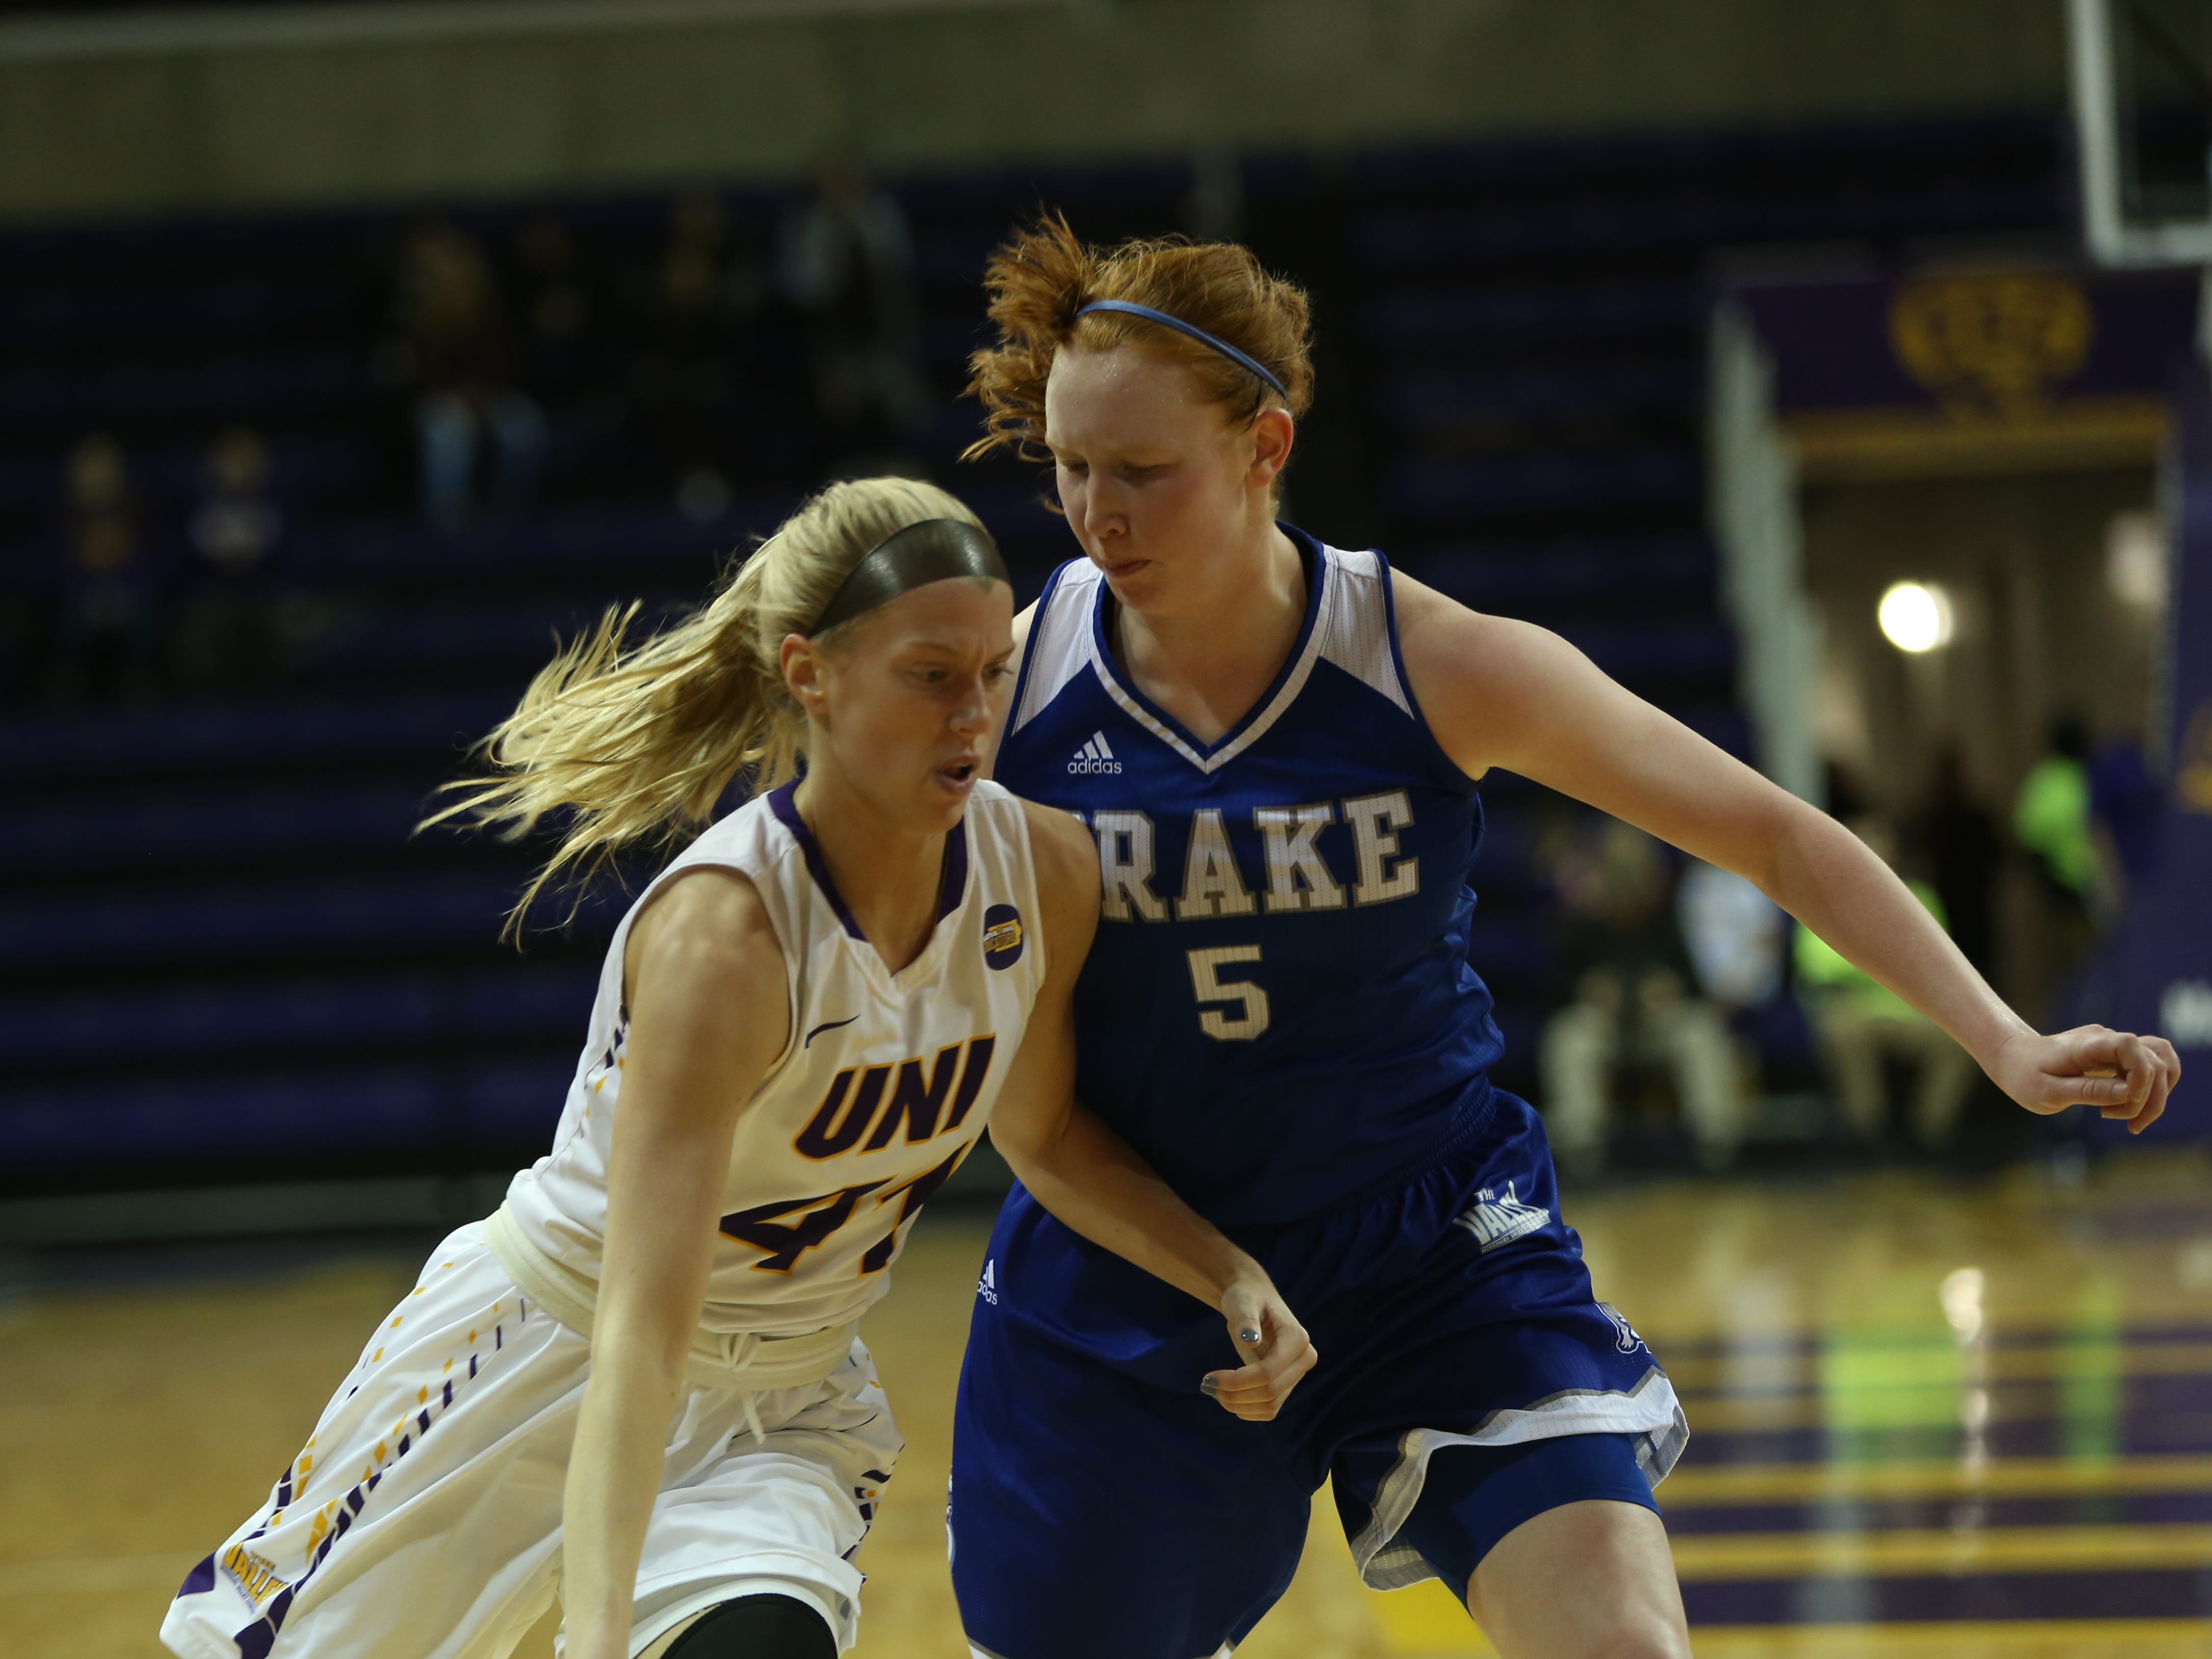 Northern Iowa's Abby Gerrits drives against Drake's Becca Hittner Friday at the McLeod Center.